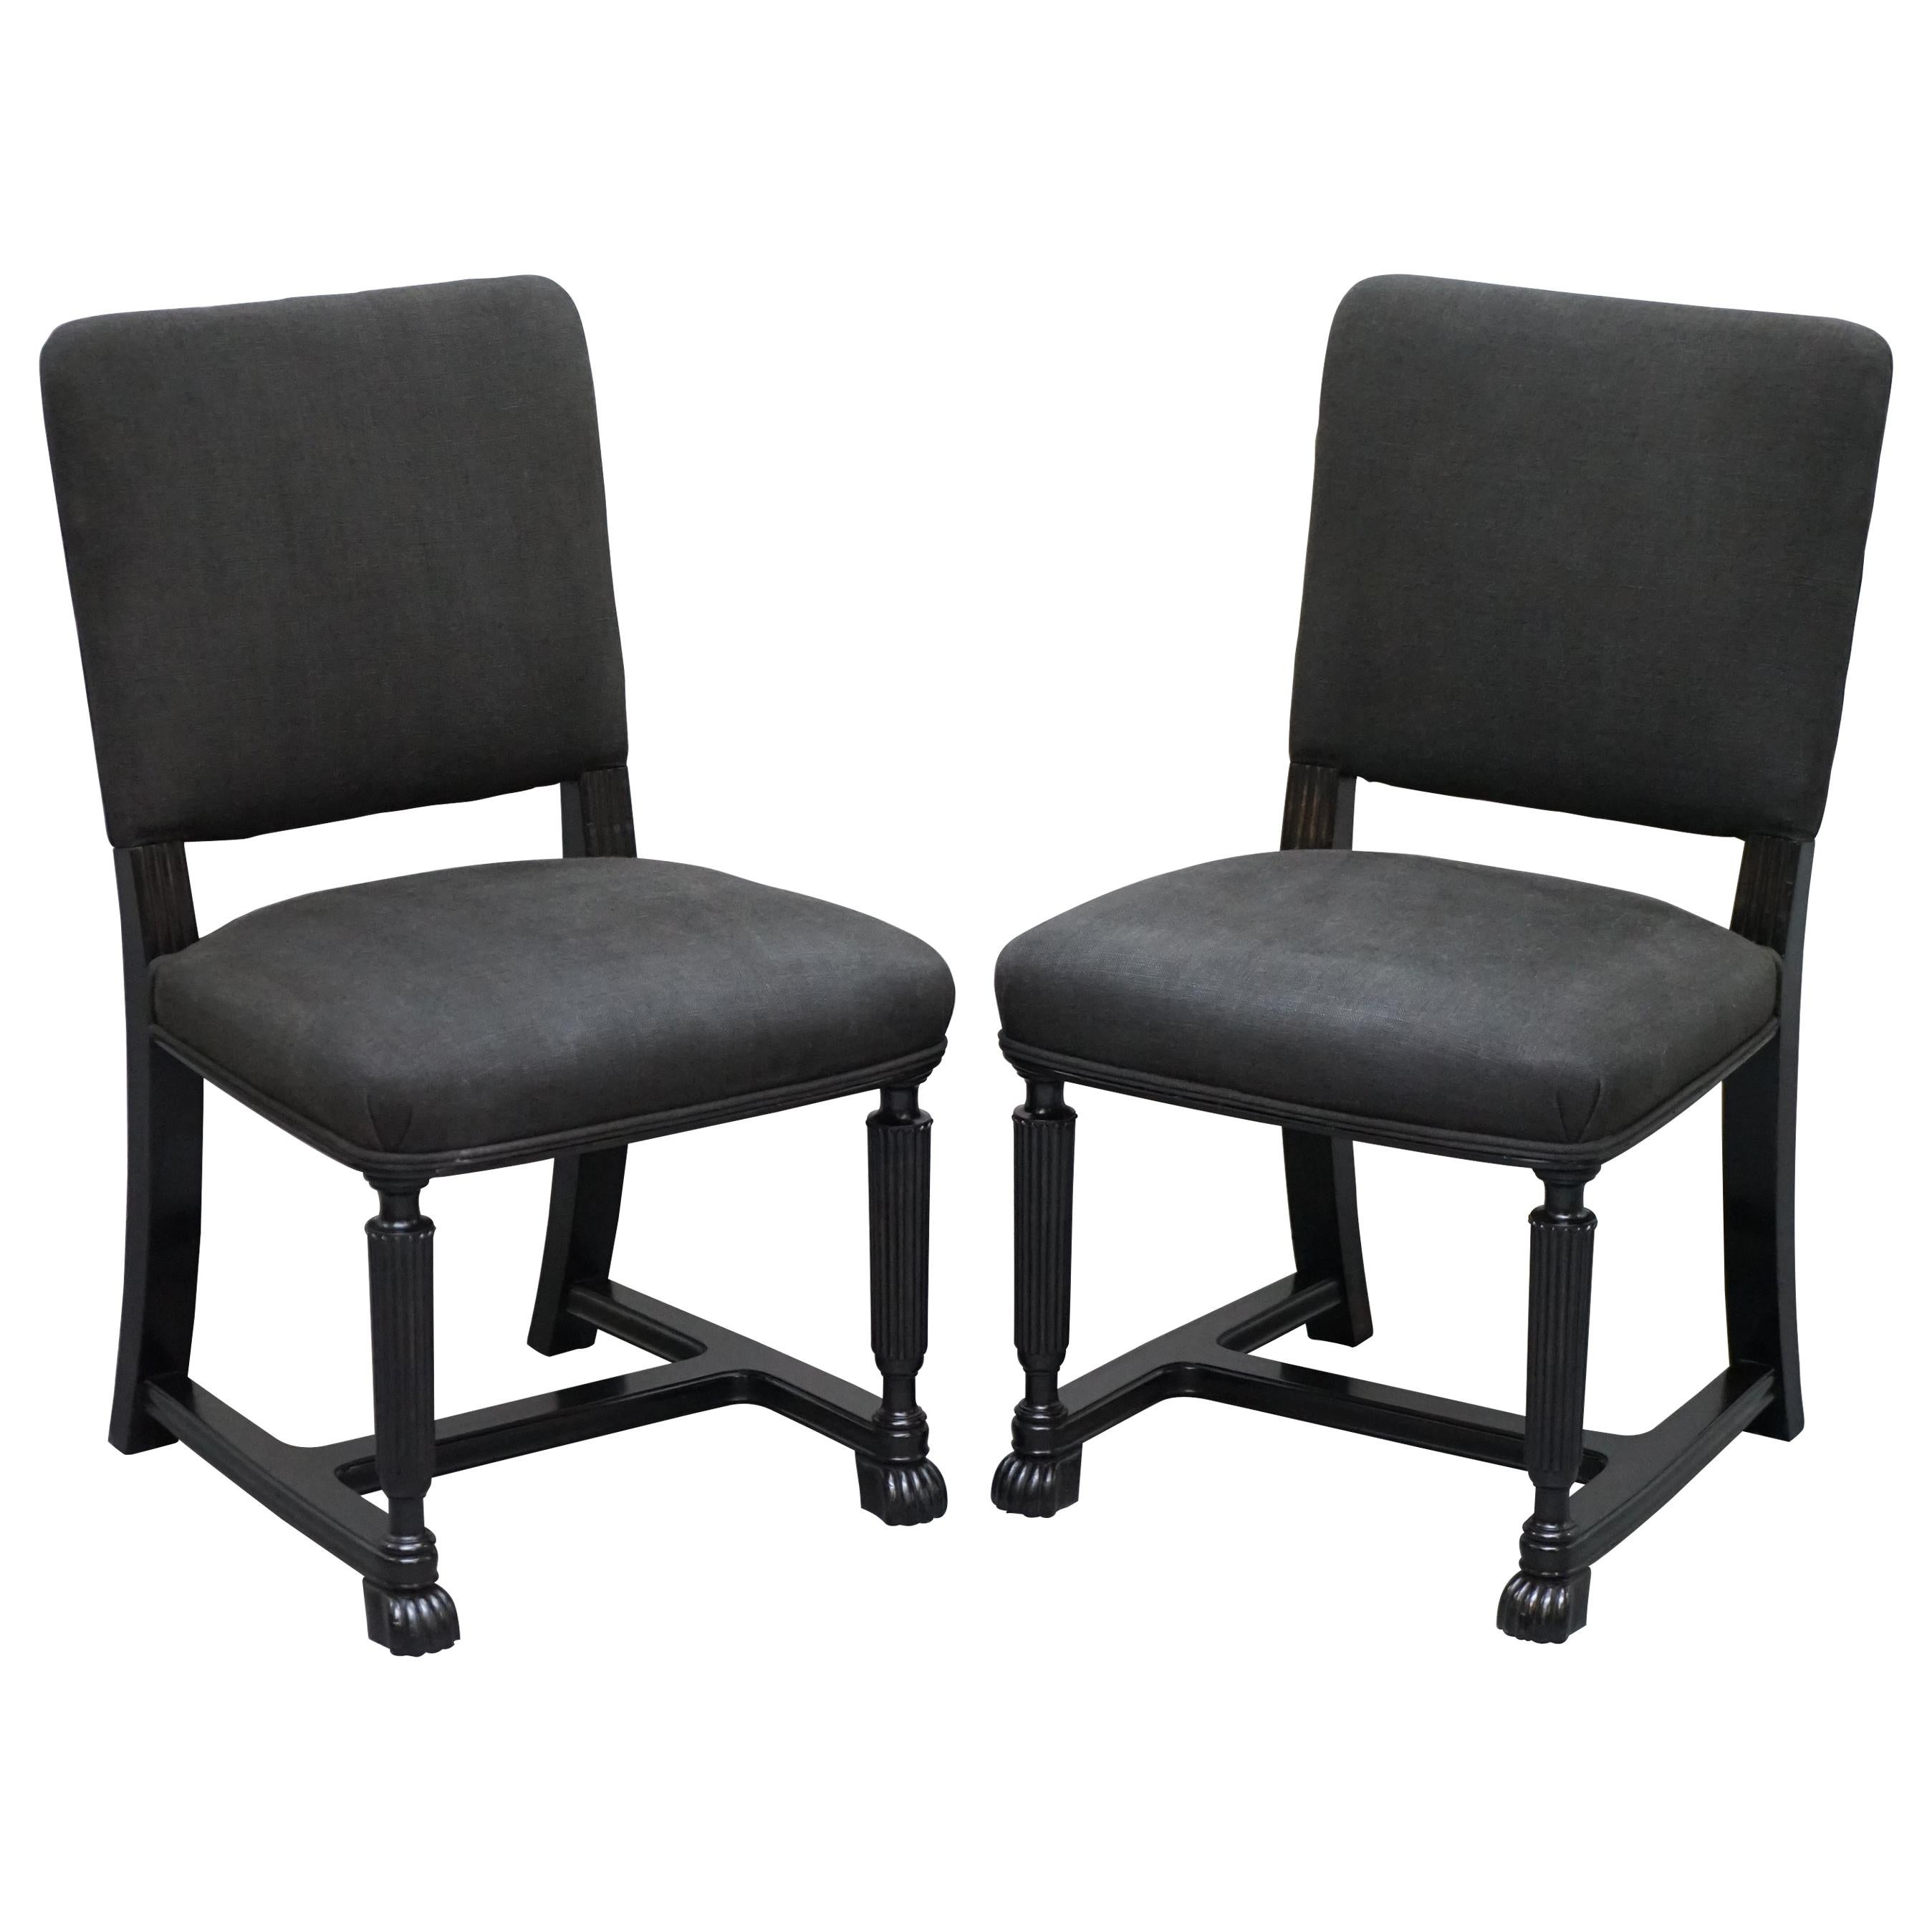 Lovely Pair of Eichholtz Occasional Chairs Ebonized Frames Grey Linen Upholstery